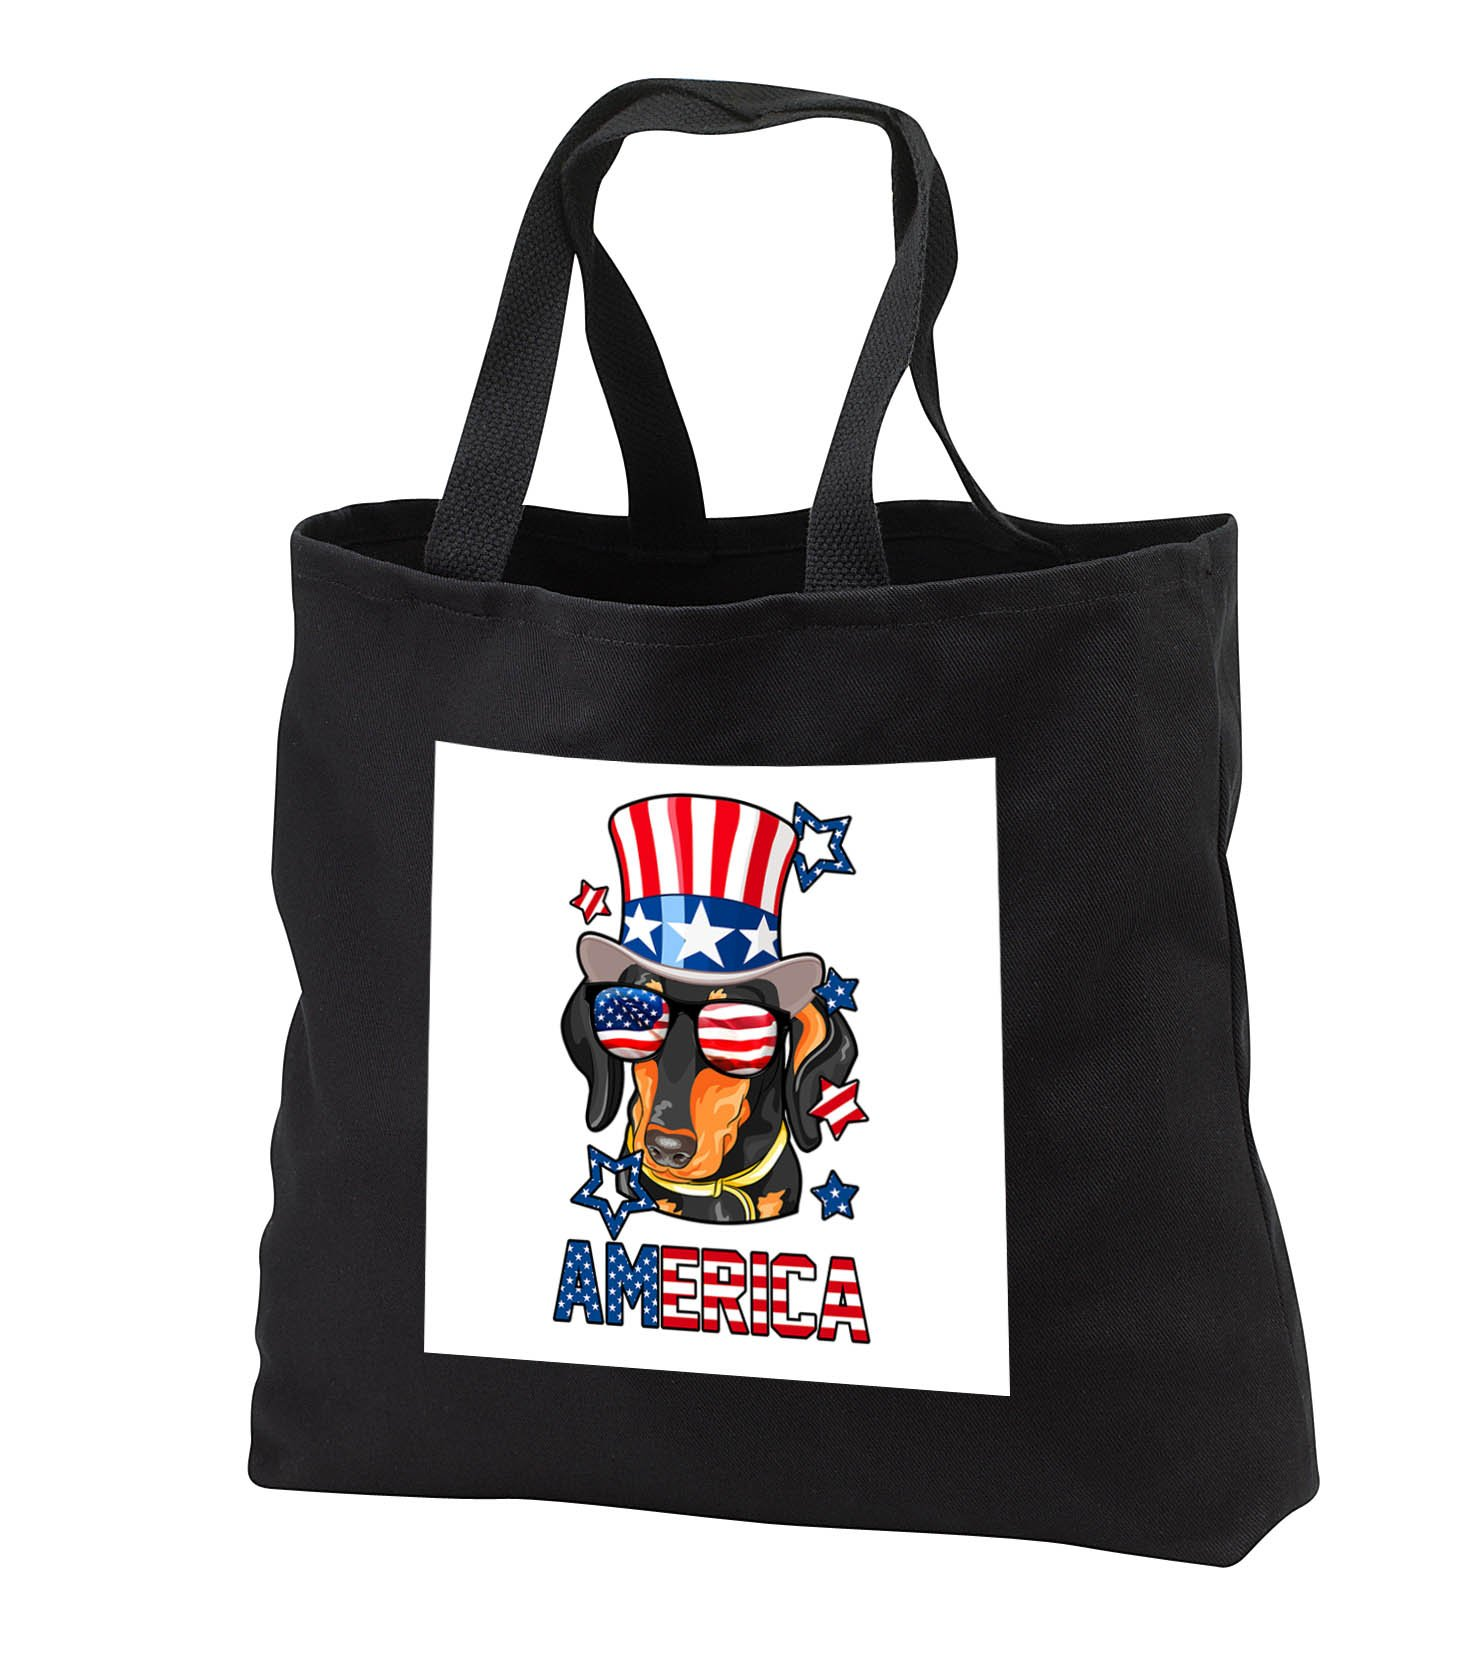 Patriotic American Dogs - Dachshund With American Flag Sunglasses and Tophat Dog America - Tote Bags - Black Tote Bag 14w x 14h x 3d (tb_284229_1)